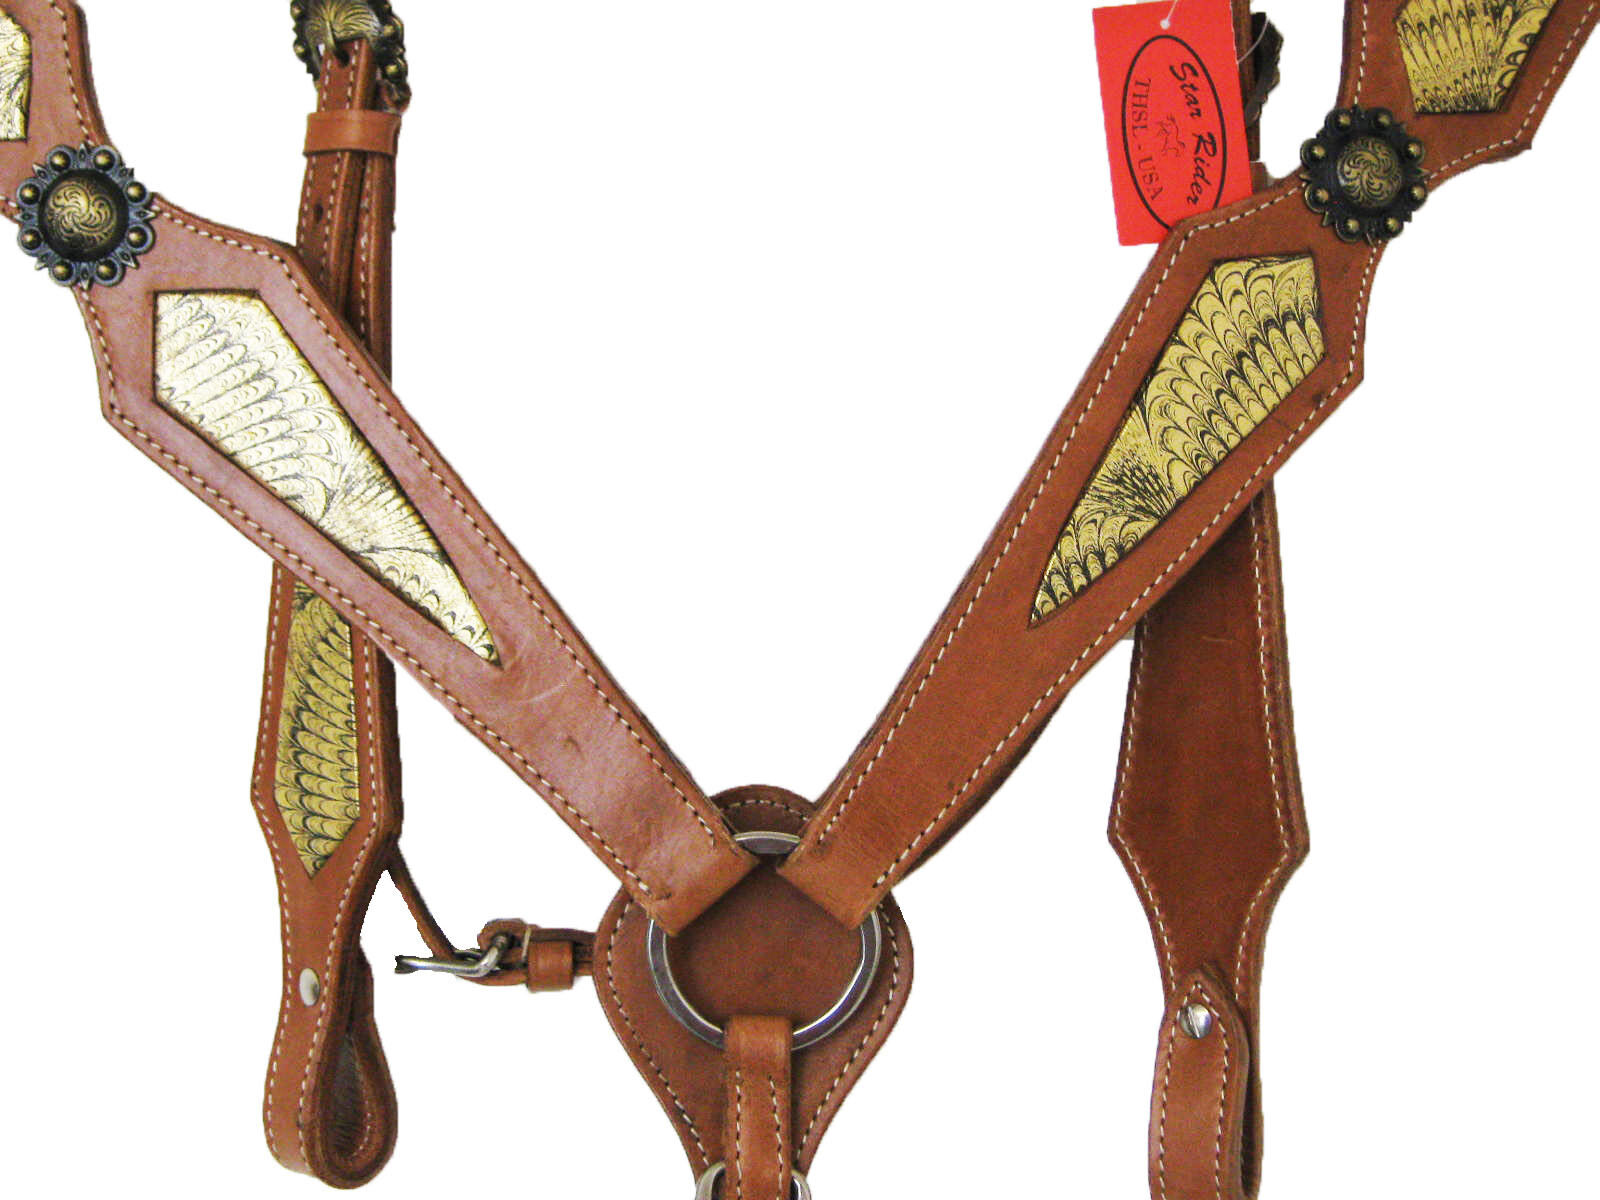 'THSL' HEADSTALL BREASTCOLLAR SET-FULL-NATURAL TAN goldEN INSERTS (1042))